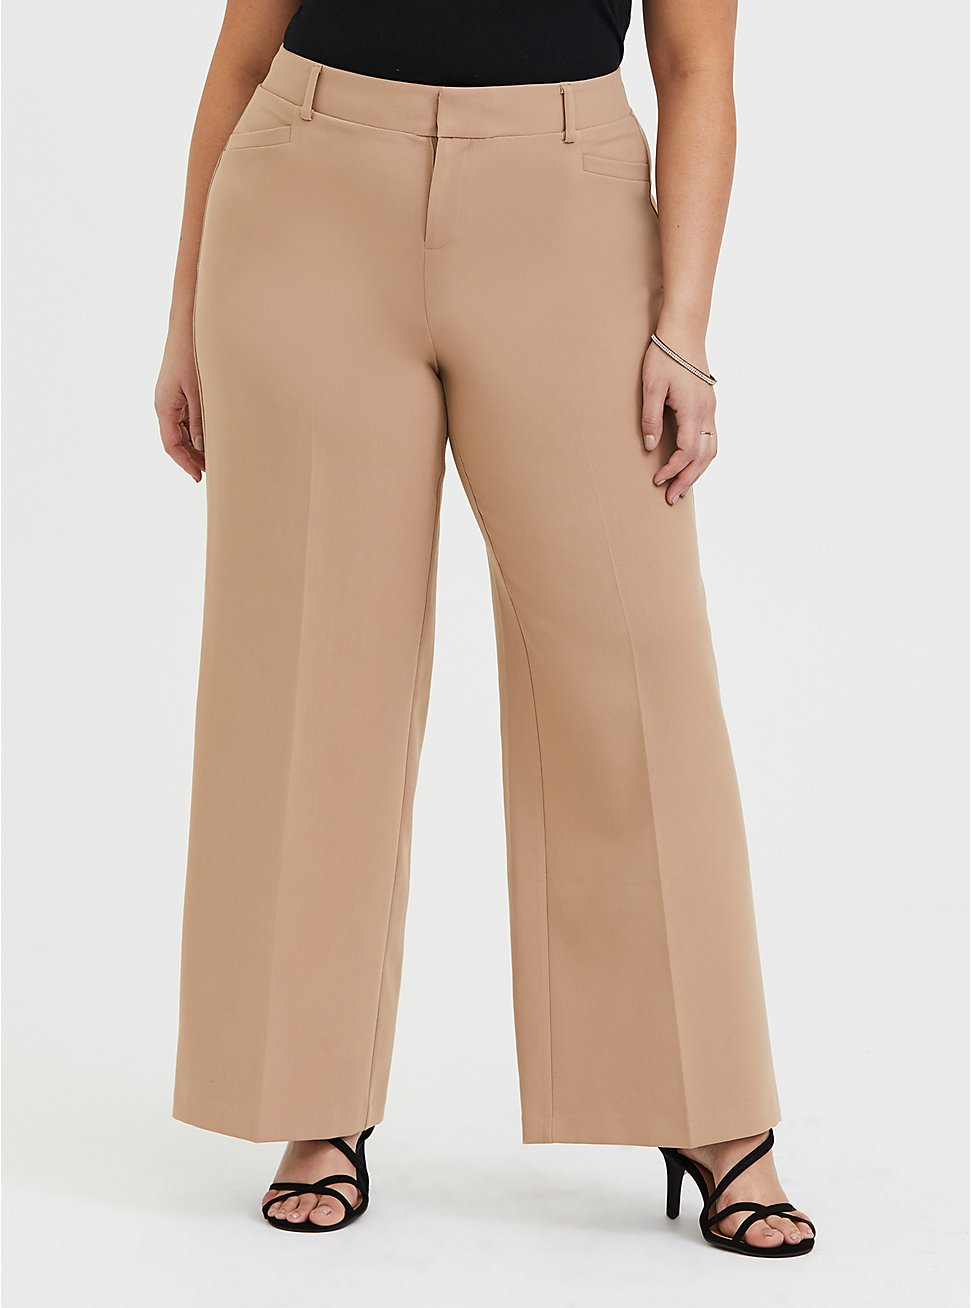 Plus Size Beige Structured Wide Leg Pant, MACCHIATO BEIGE, hi-res